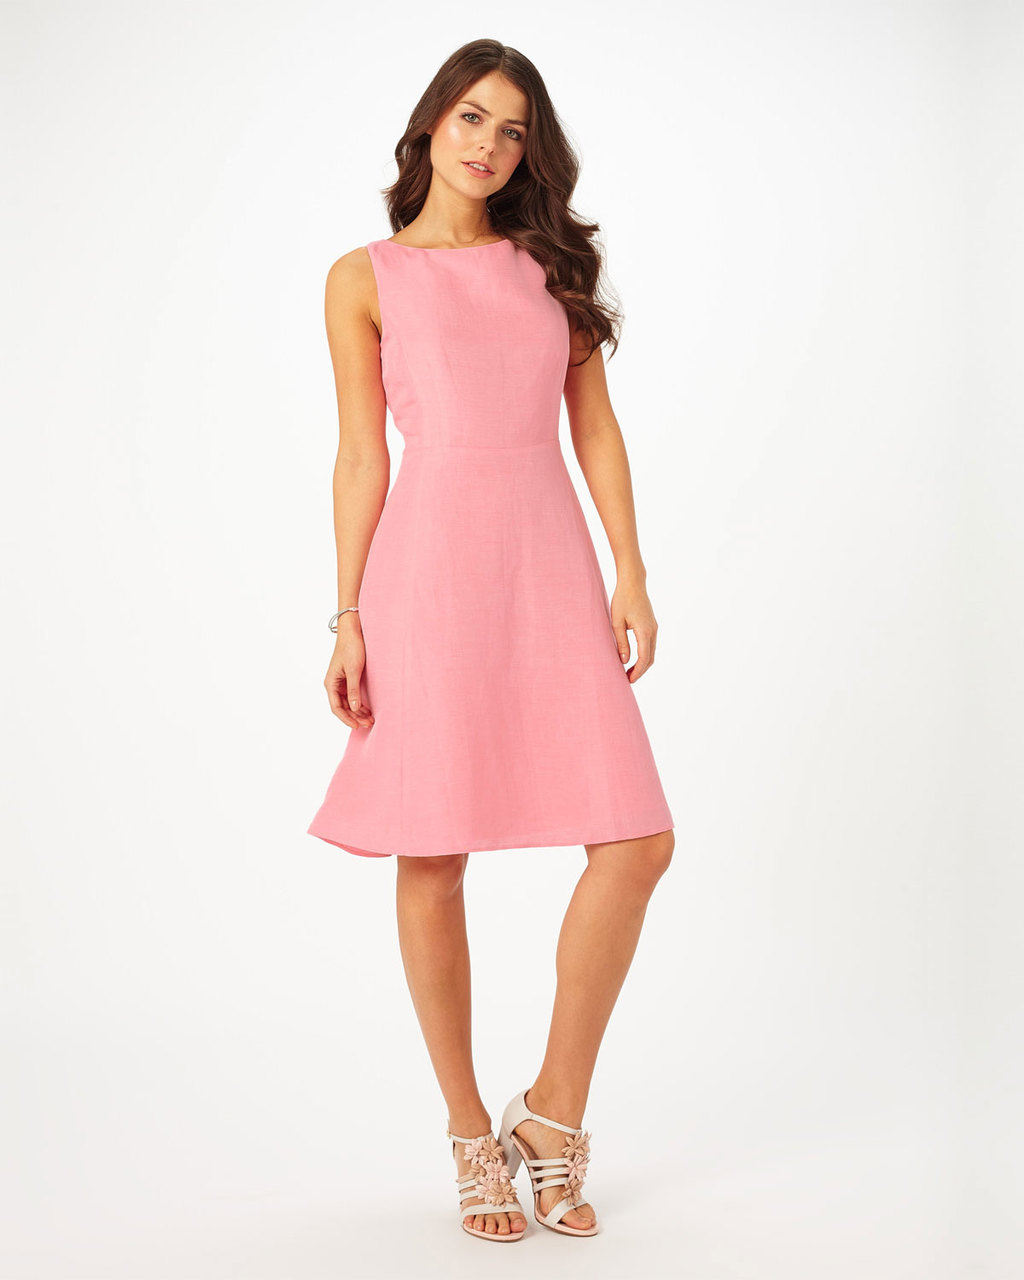 Louanna Dress - neckline: slash/boat neckline; pattern: plain; sleeve style: sleeveless; predominant colour: pink; occasions: evening; length: on the knee; fit: fitted at waist & bust; style: fit & flare; fibres: linen - mix; sleeve length: sleeveless; pattern type: fabric; texture group: other - light to midweight; season: s/s 2016